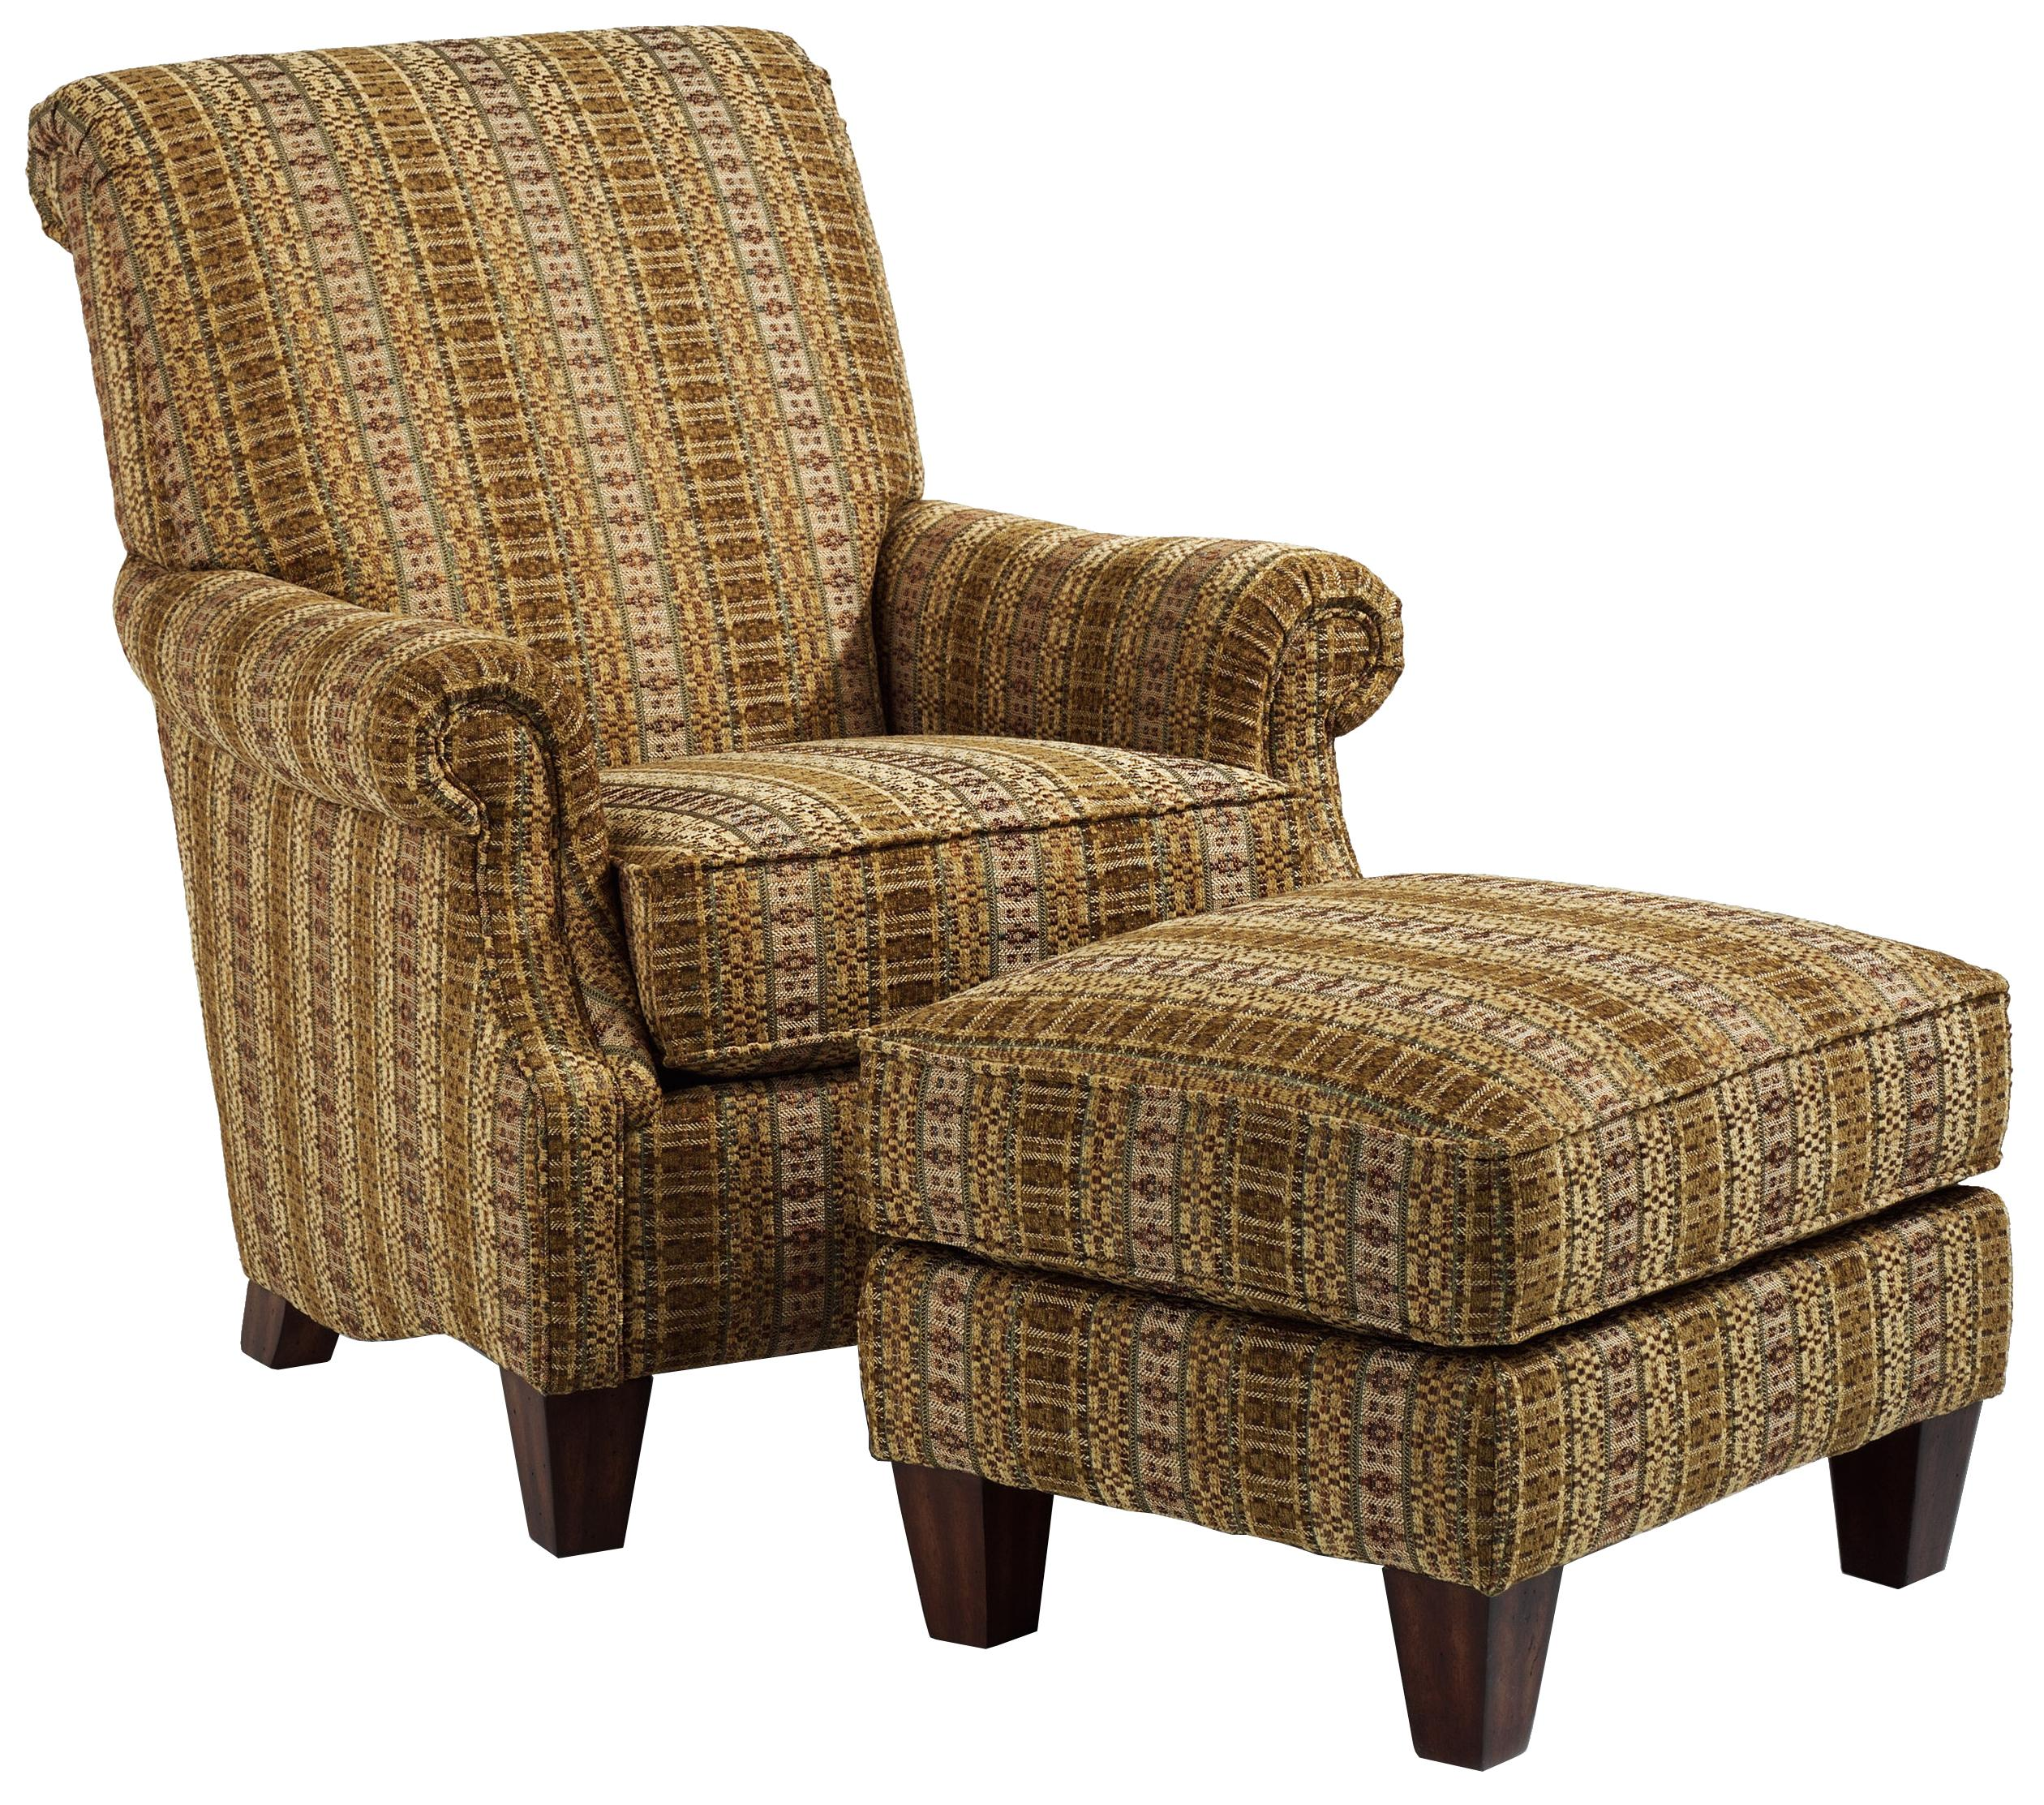 Chair and Ottoman. Flexsteel ...  sc 1 st  Rooms and Rest & Flexsteel Stafford Traditional Styled Chair and Ottoman Set for ...